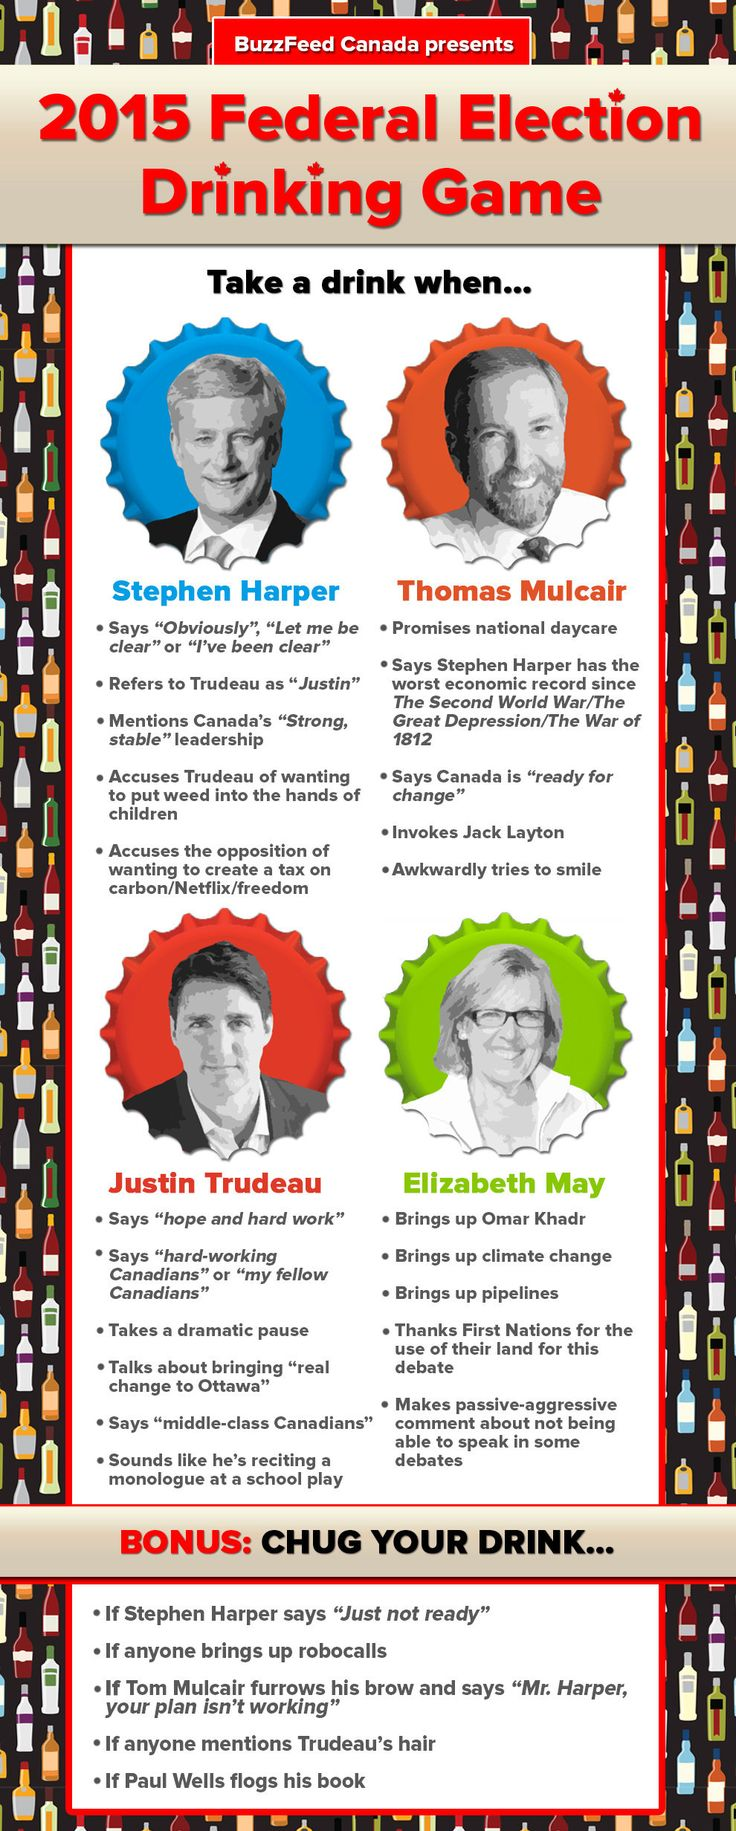 The Official 2015 Federal Election Drinking Game